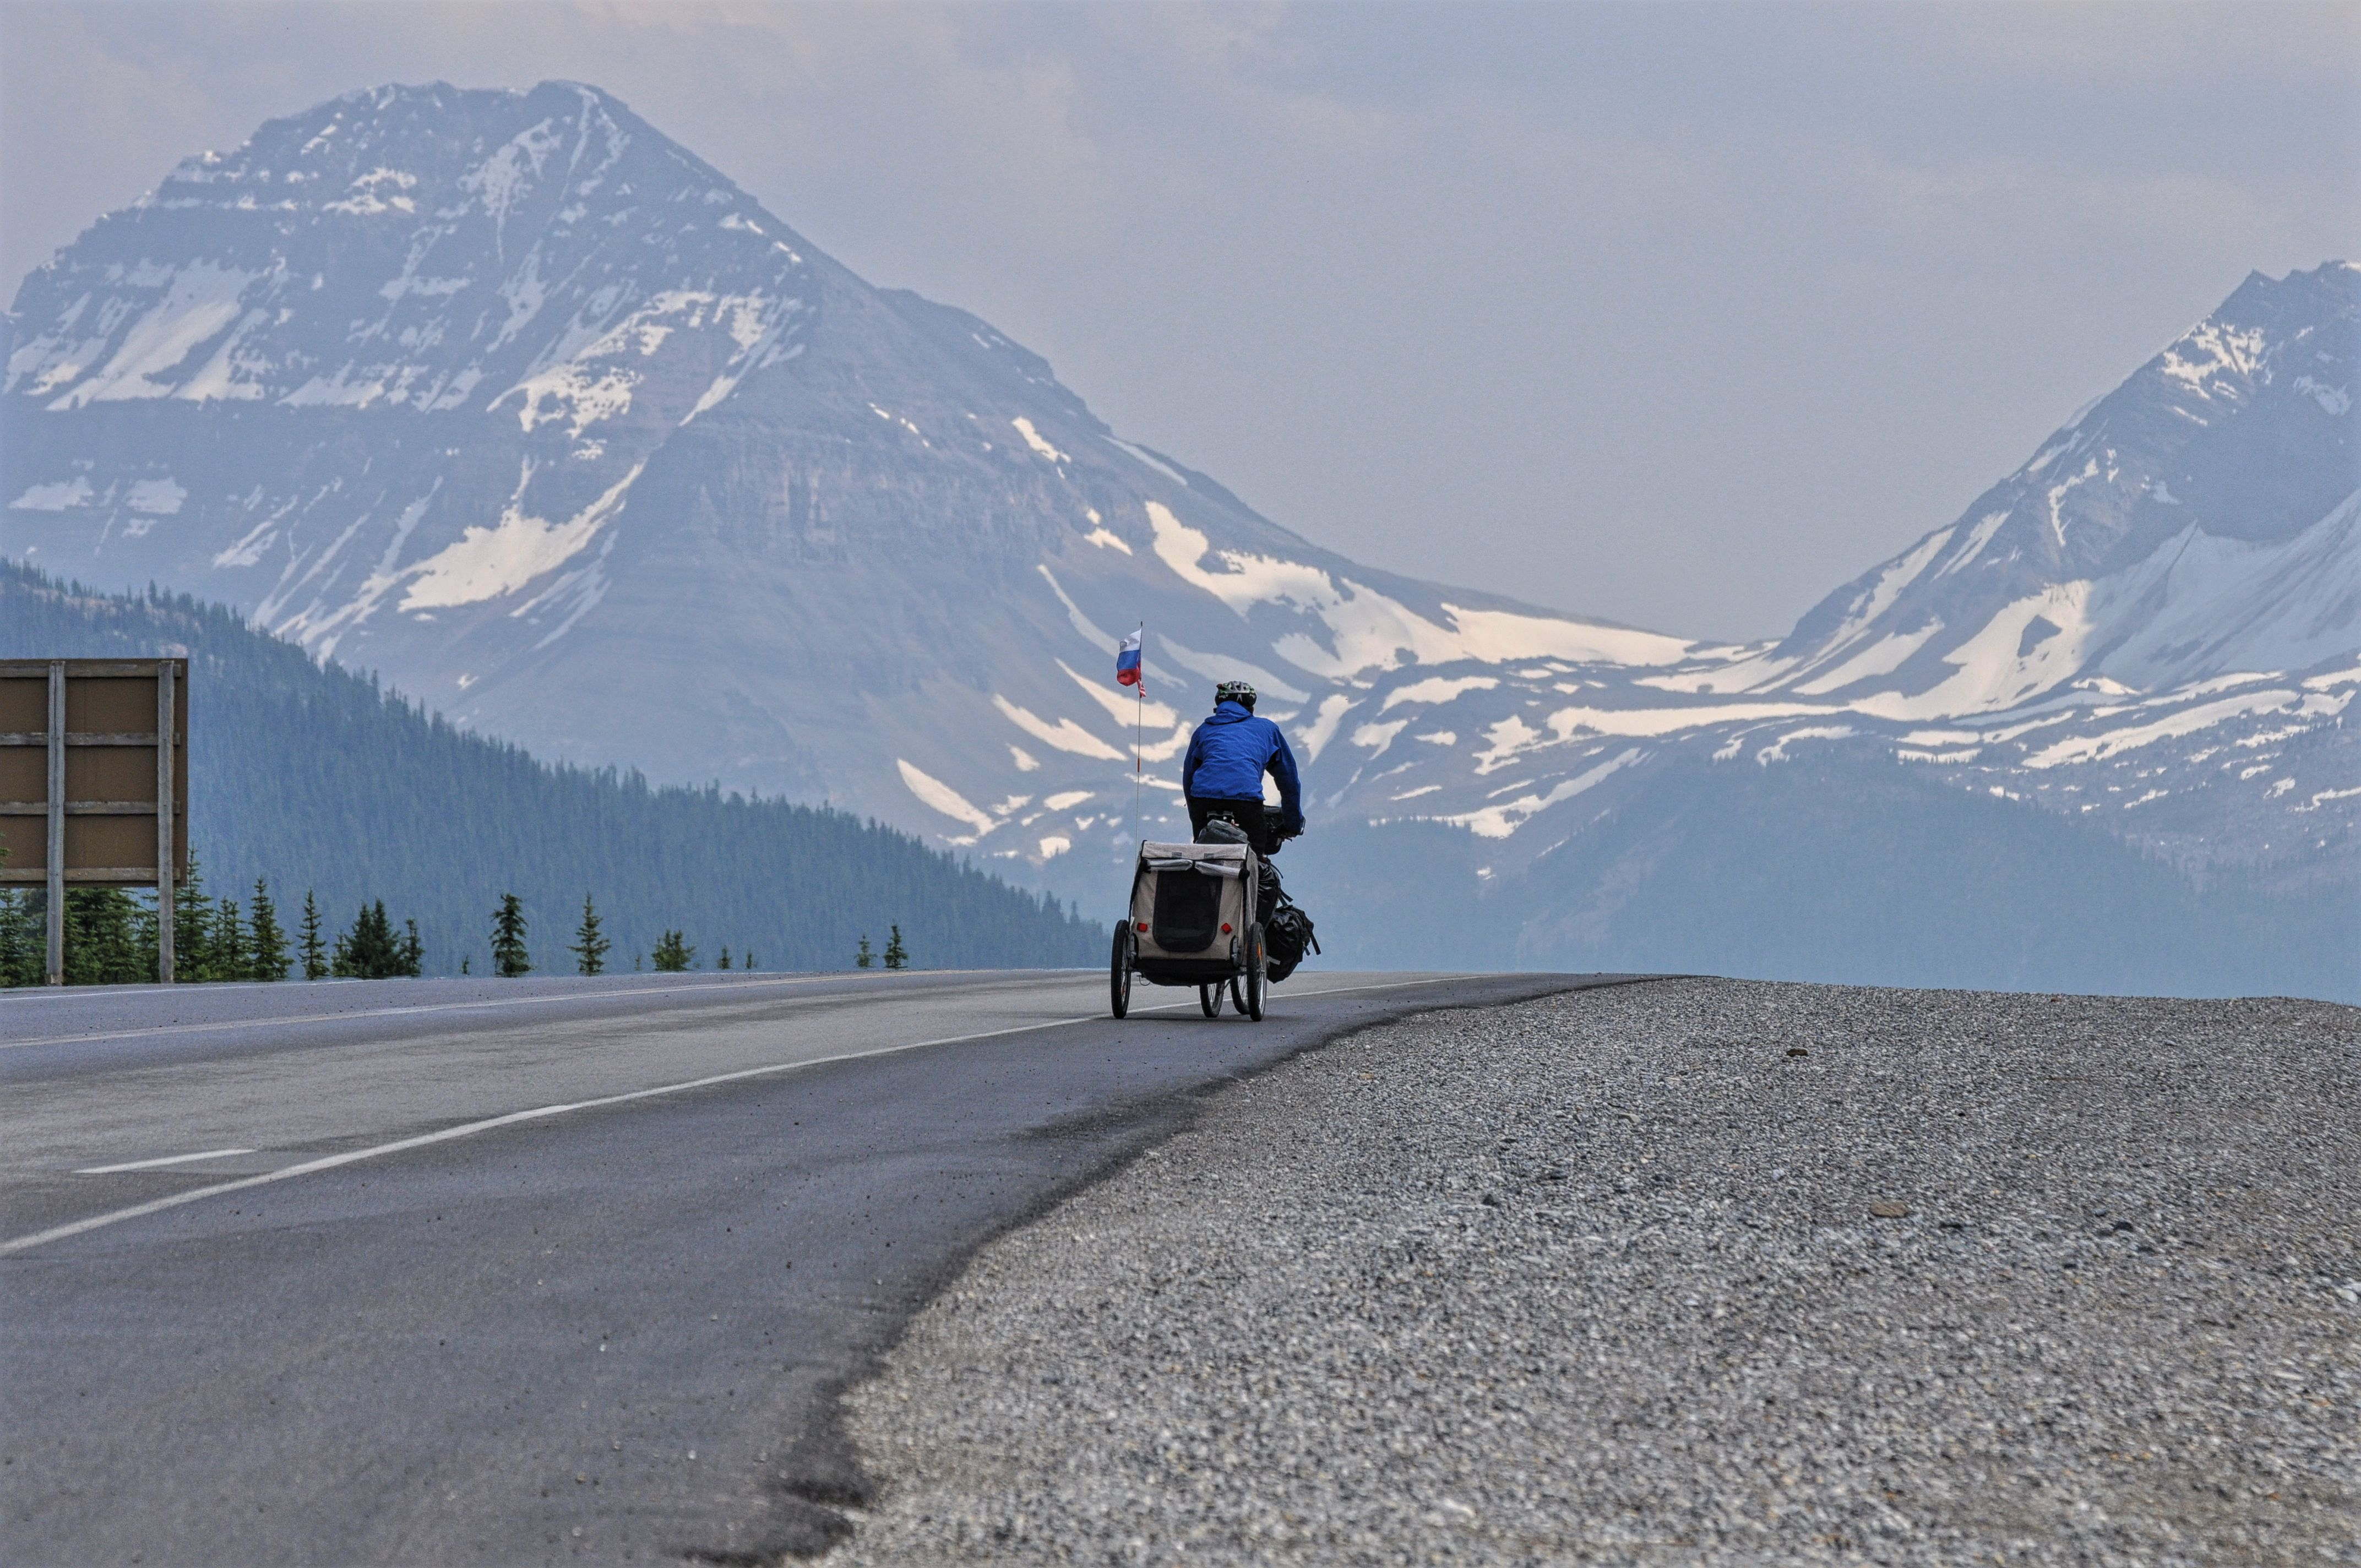 The fabulous journey to the Rockies